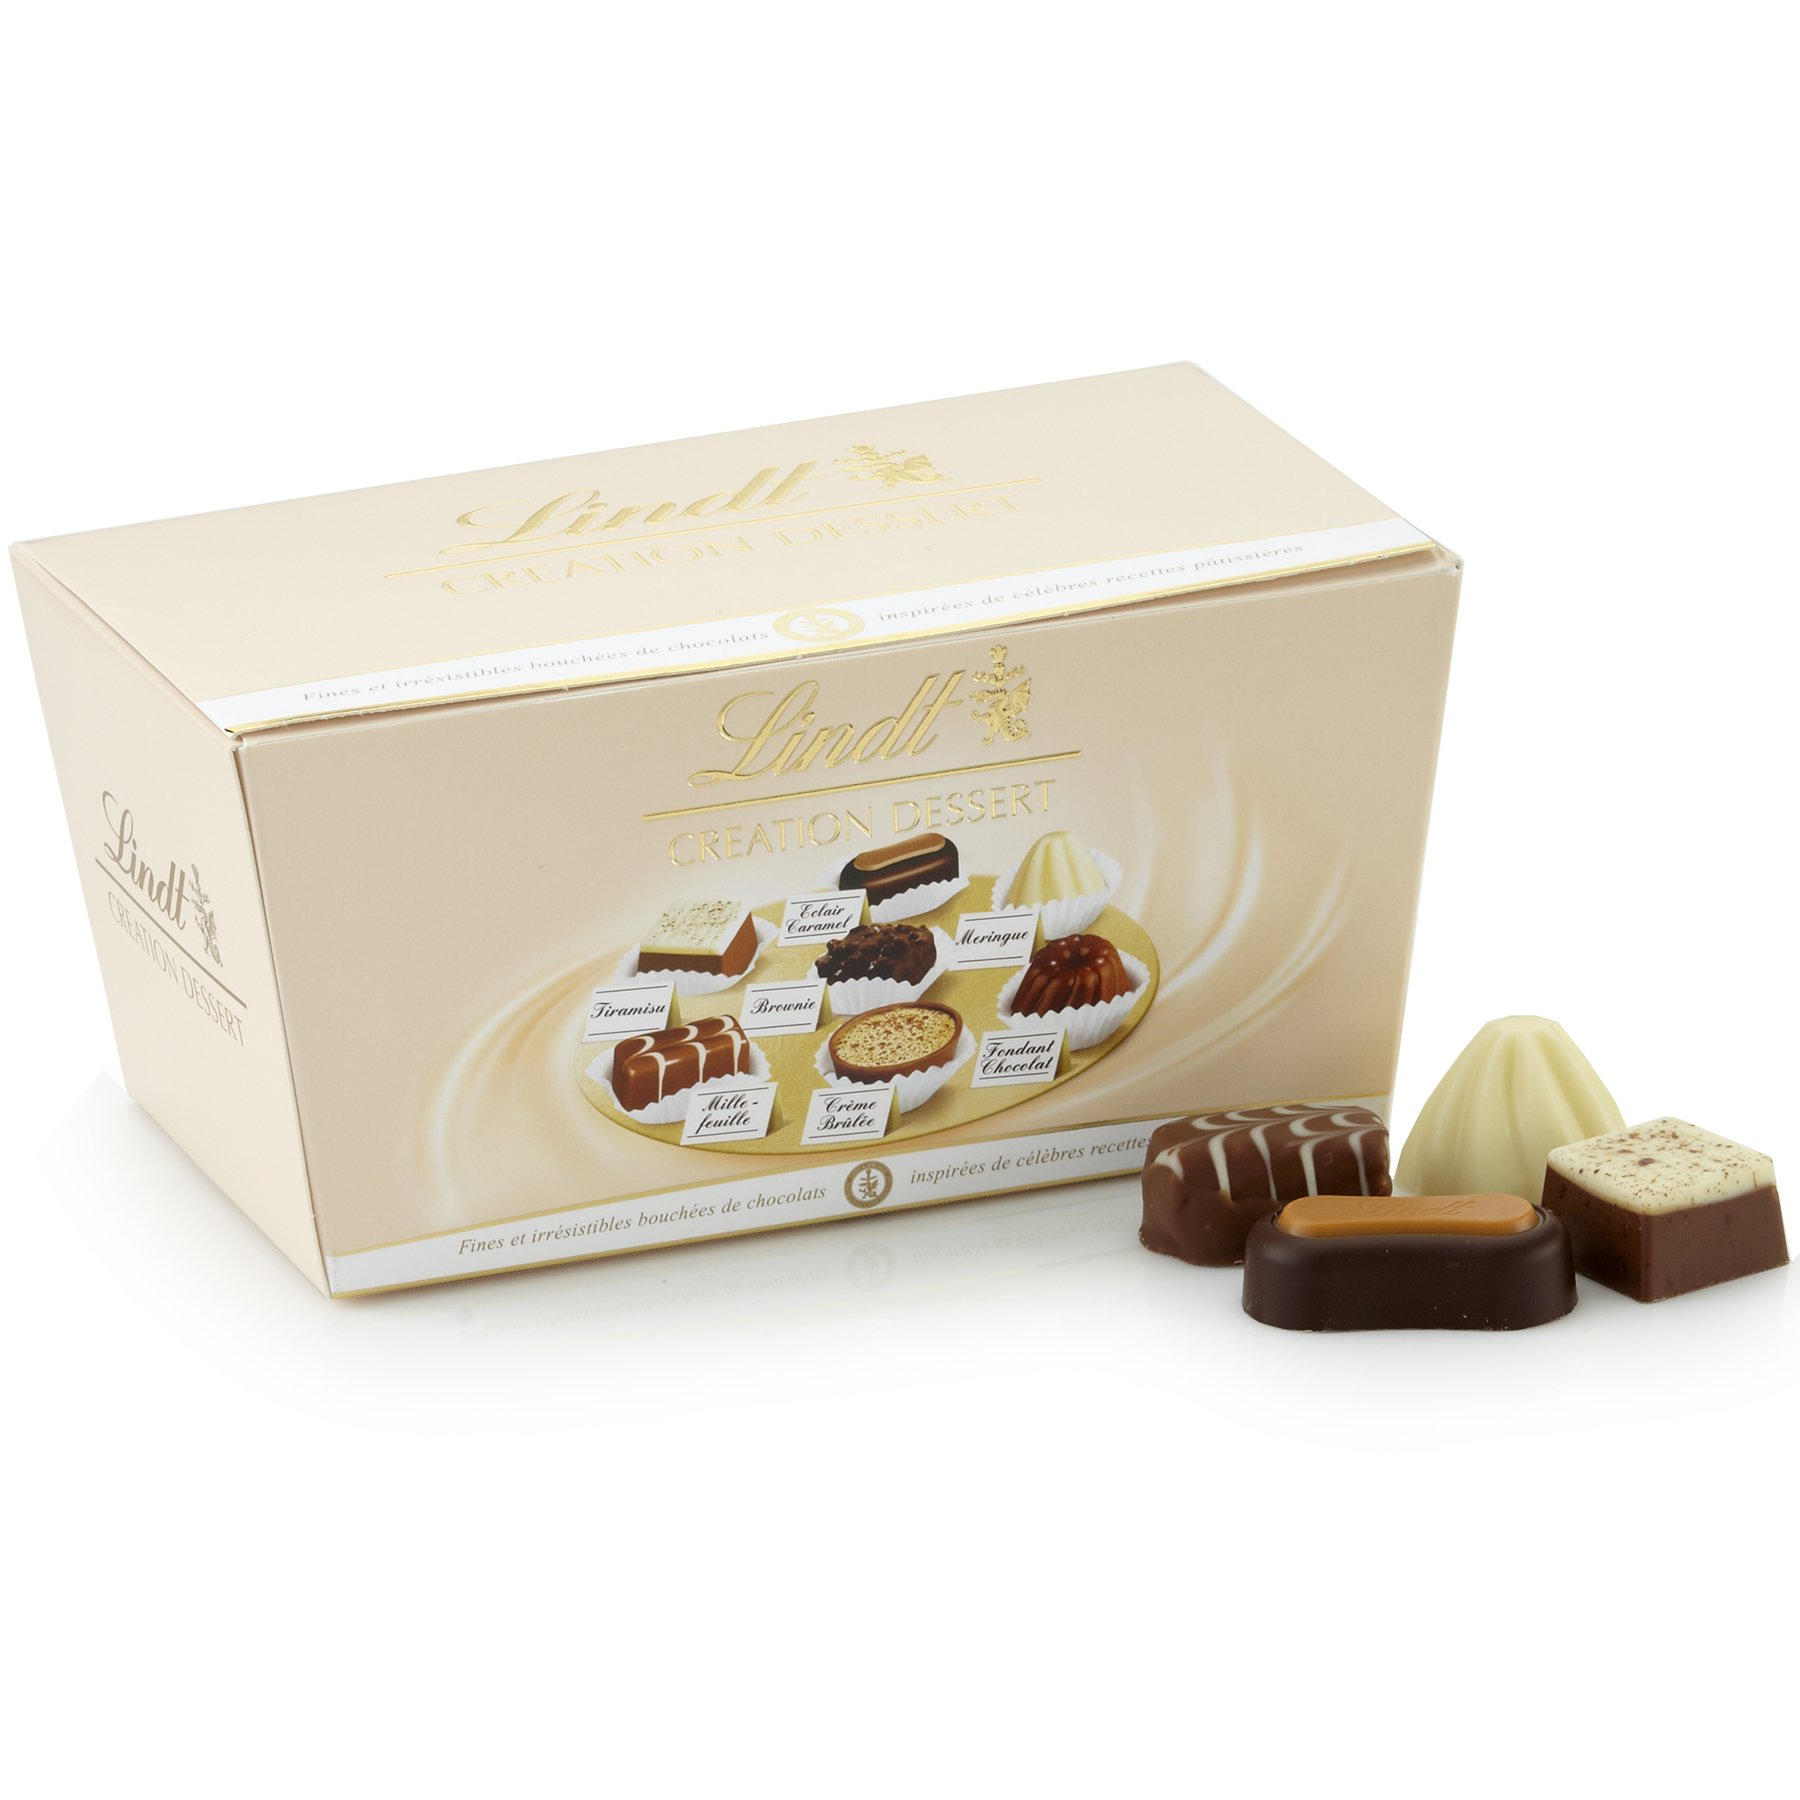 Lindt Creation Dessert, Assorted Chocolate Gift Ballotin, 21 Pieces by Lindt